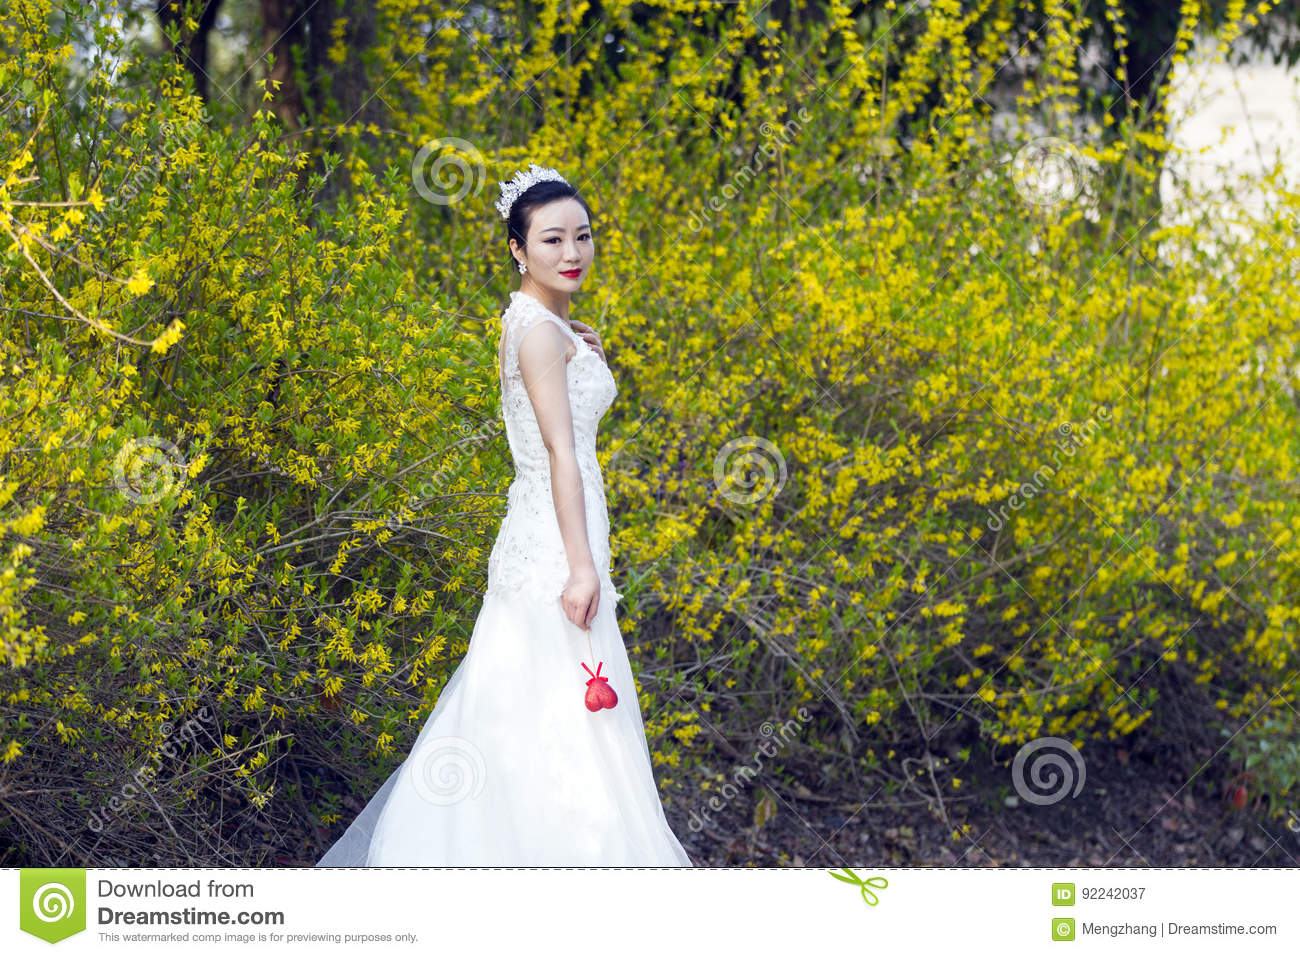 A Bride With White Wedding Dress Stand By Golden Jasmine Flowers